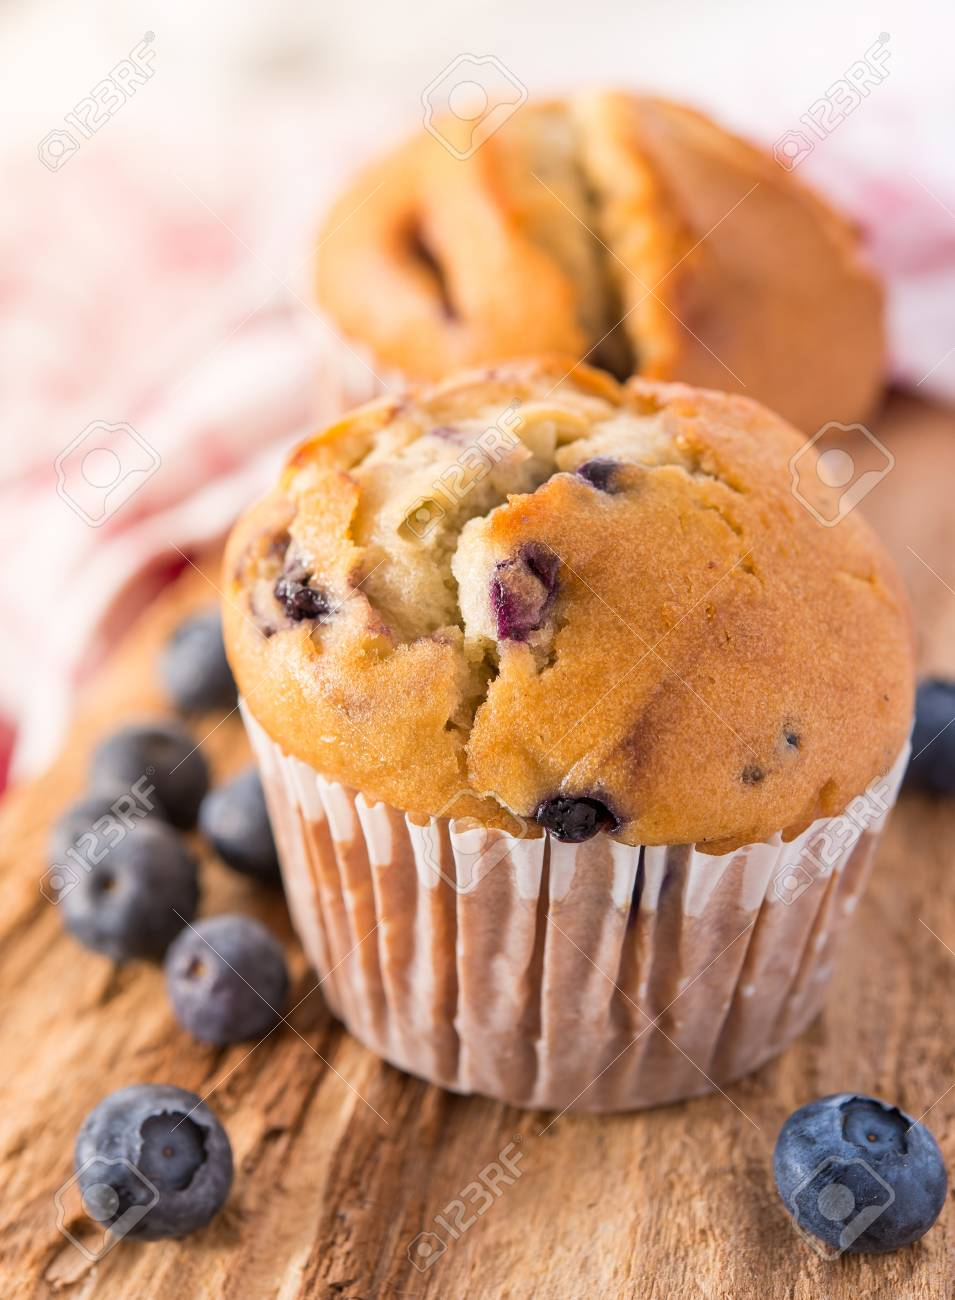 Blueberry muffins with a breakfast setting Stock Photo - 17468885